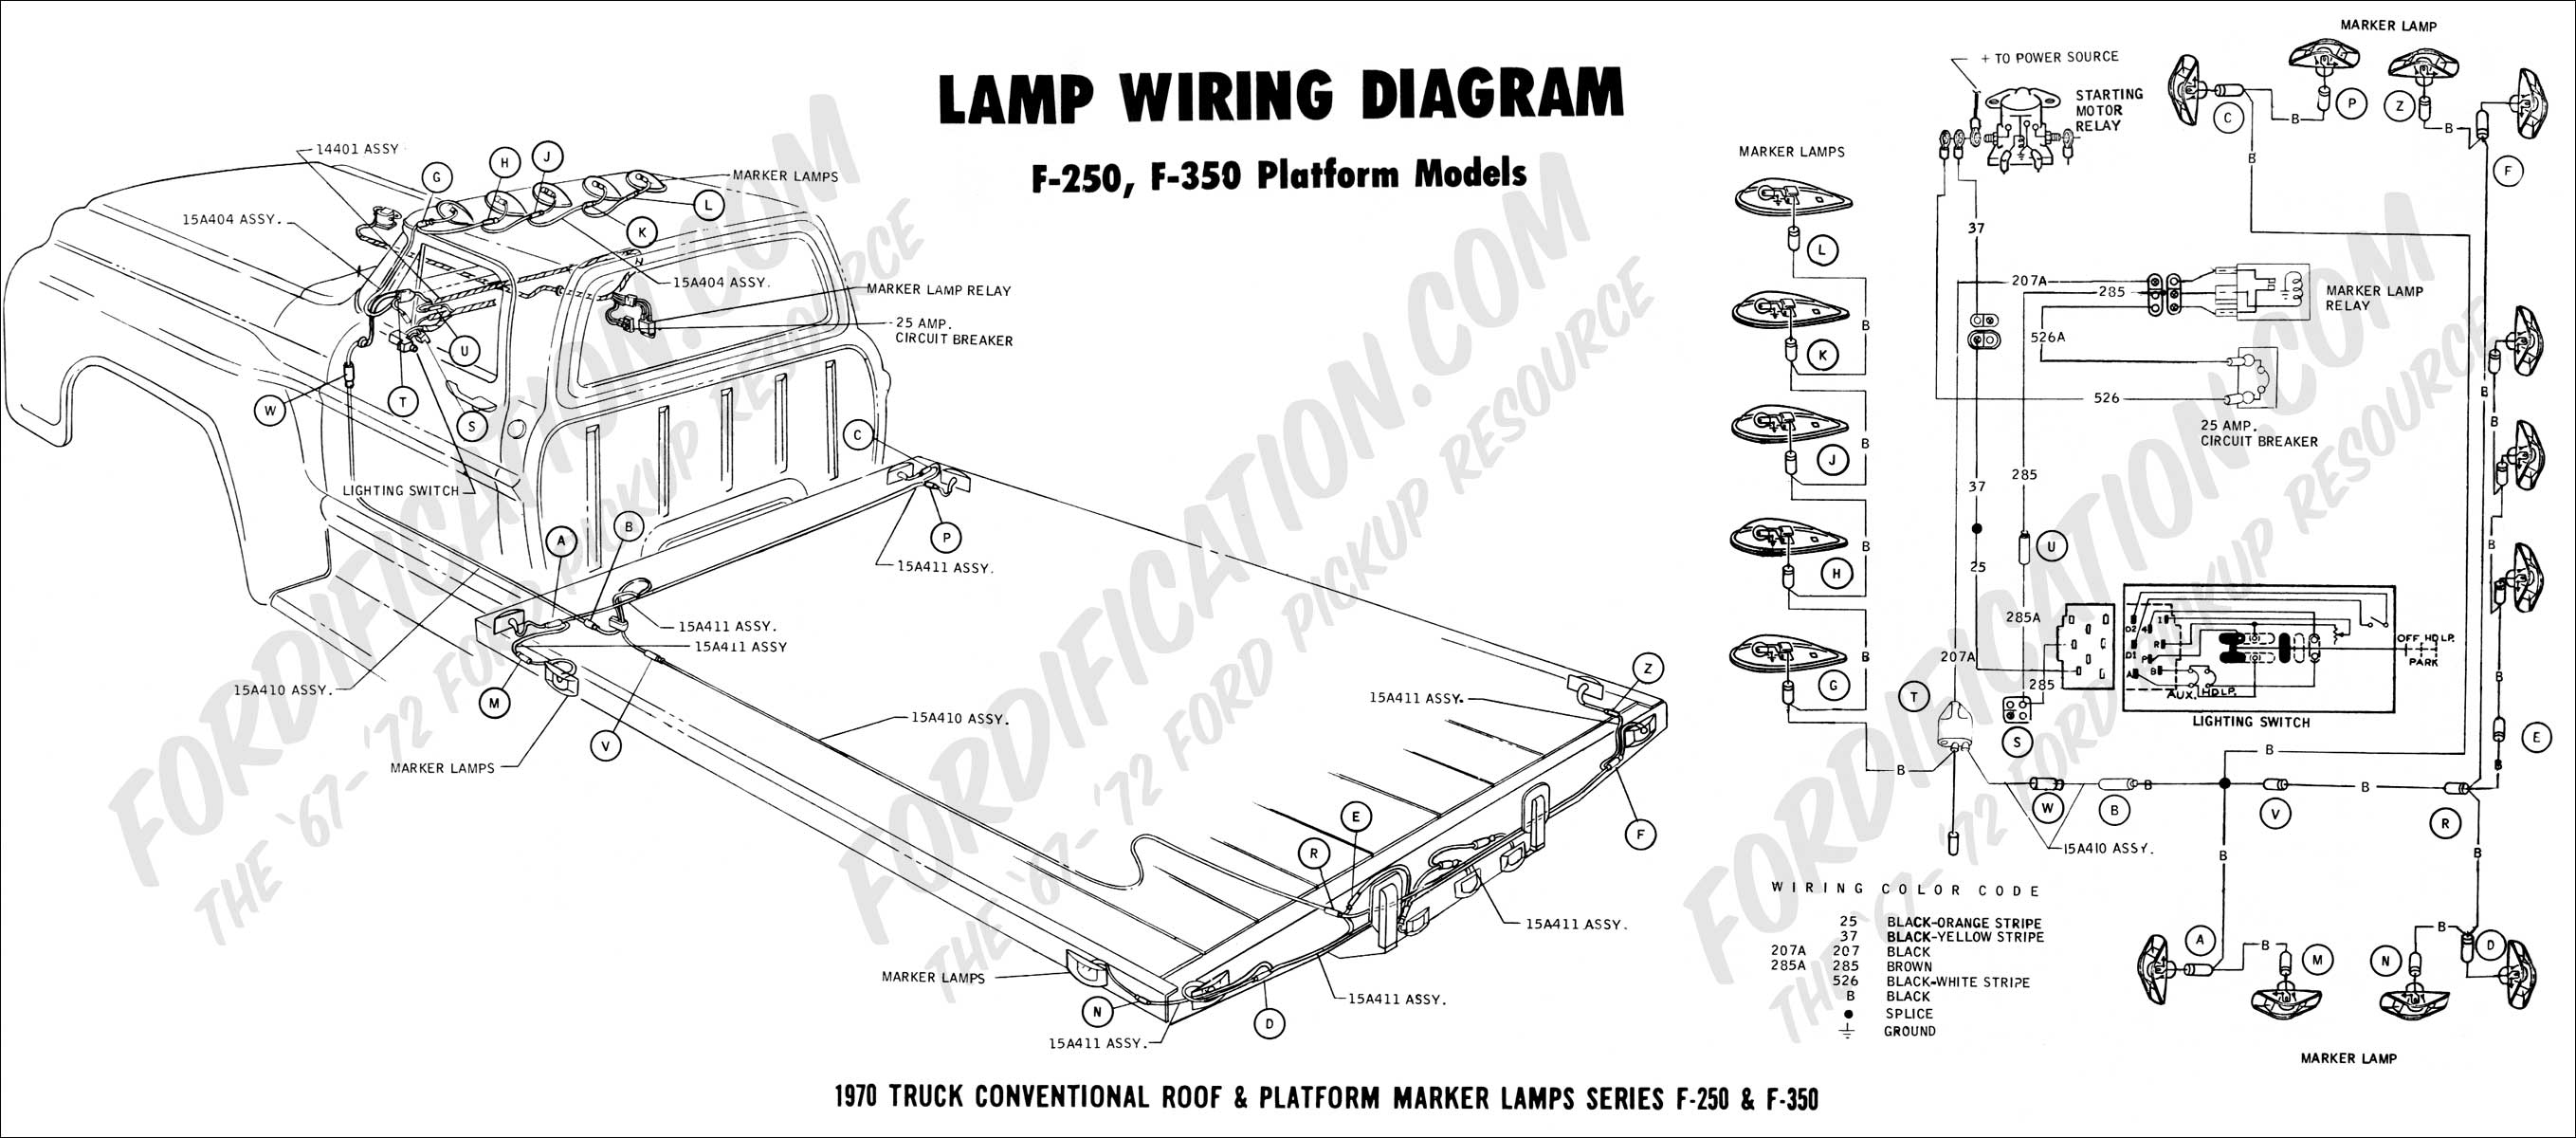 1985 ford f 250 wiring diagram ford truck technical drawings and schematics section h wiring 1970 f 250 f 350 power pak